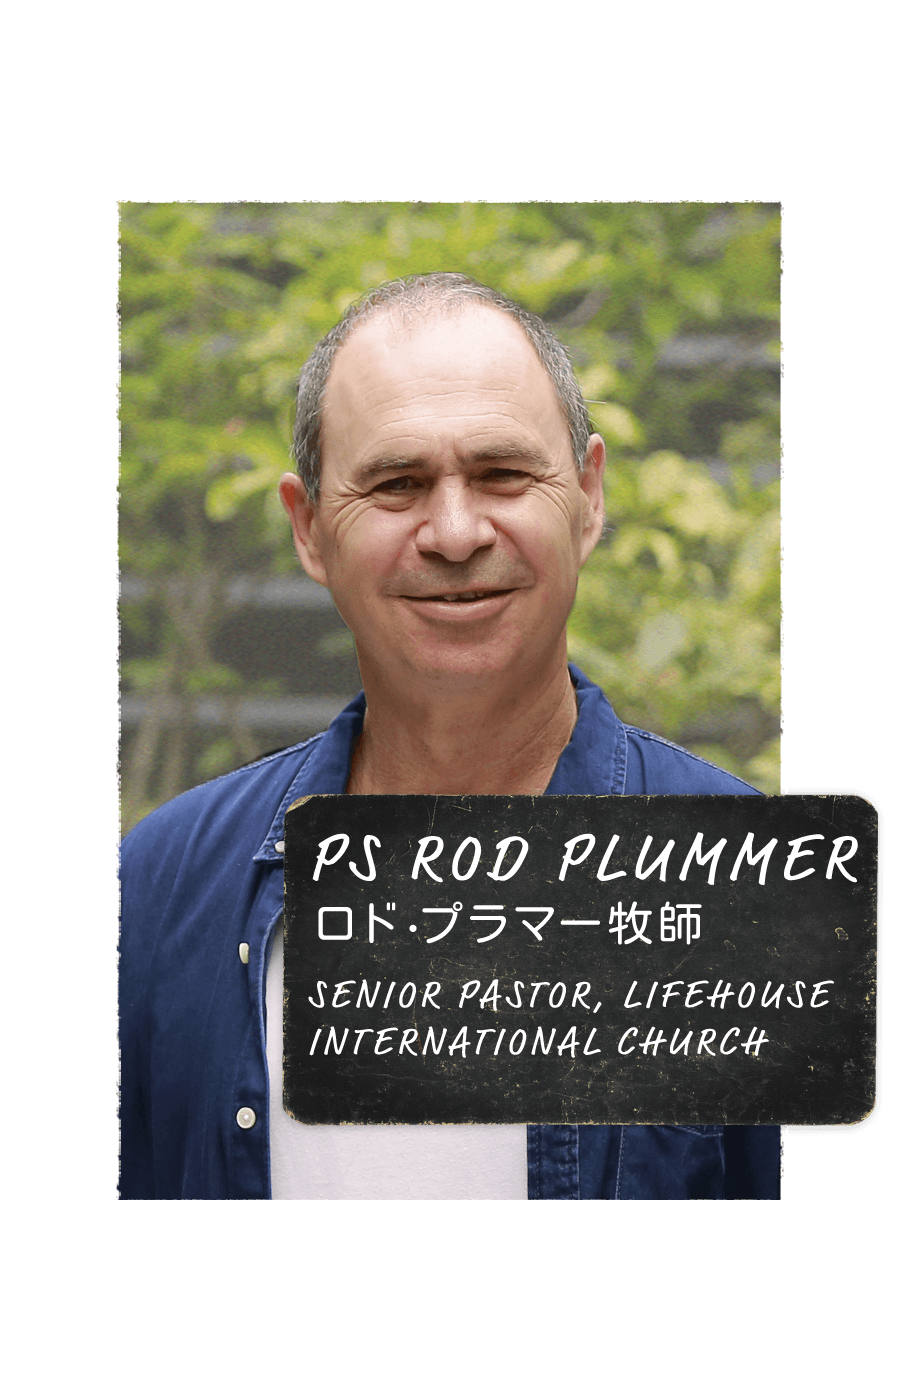 Ps Rod Plummer. senior pastor of Lifehouse International Church